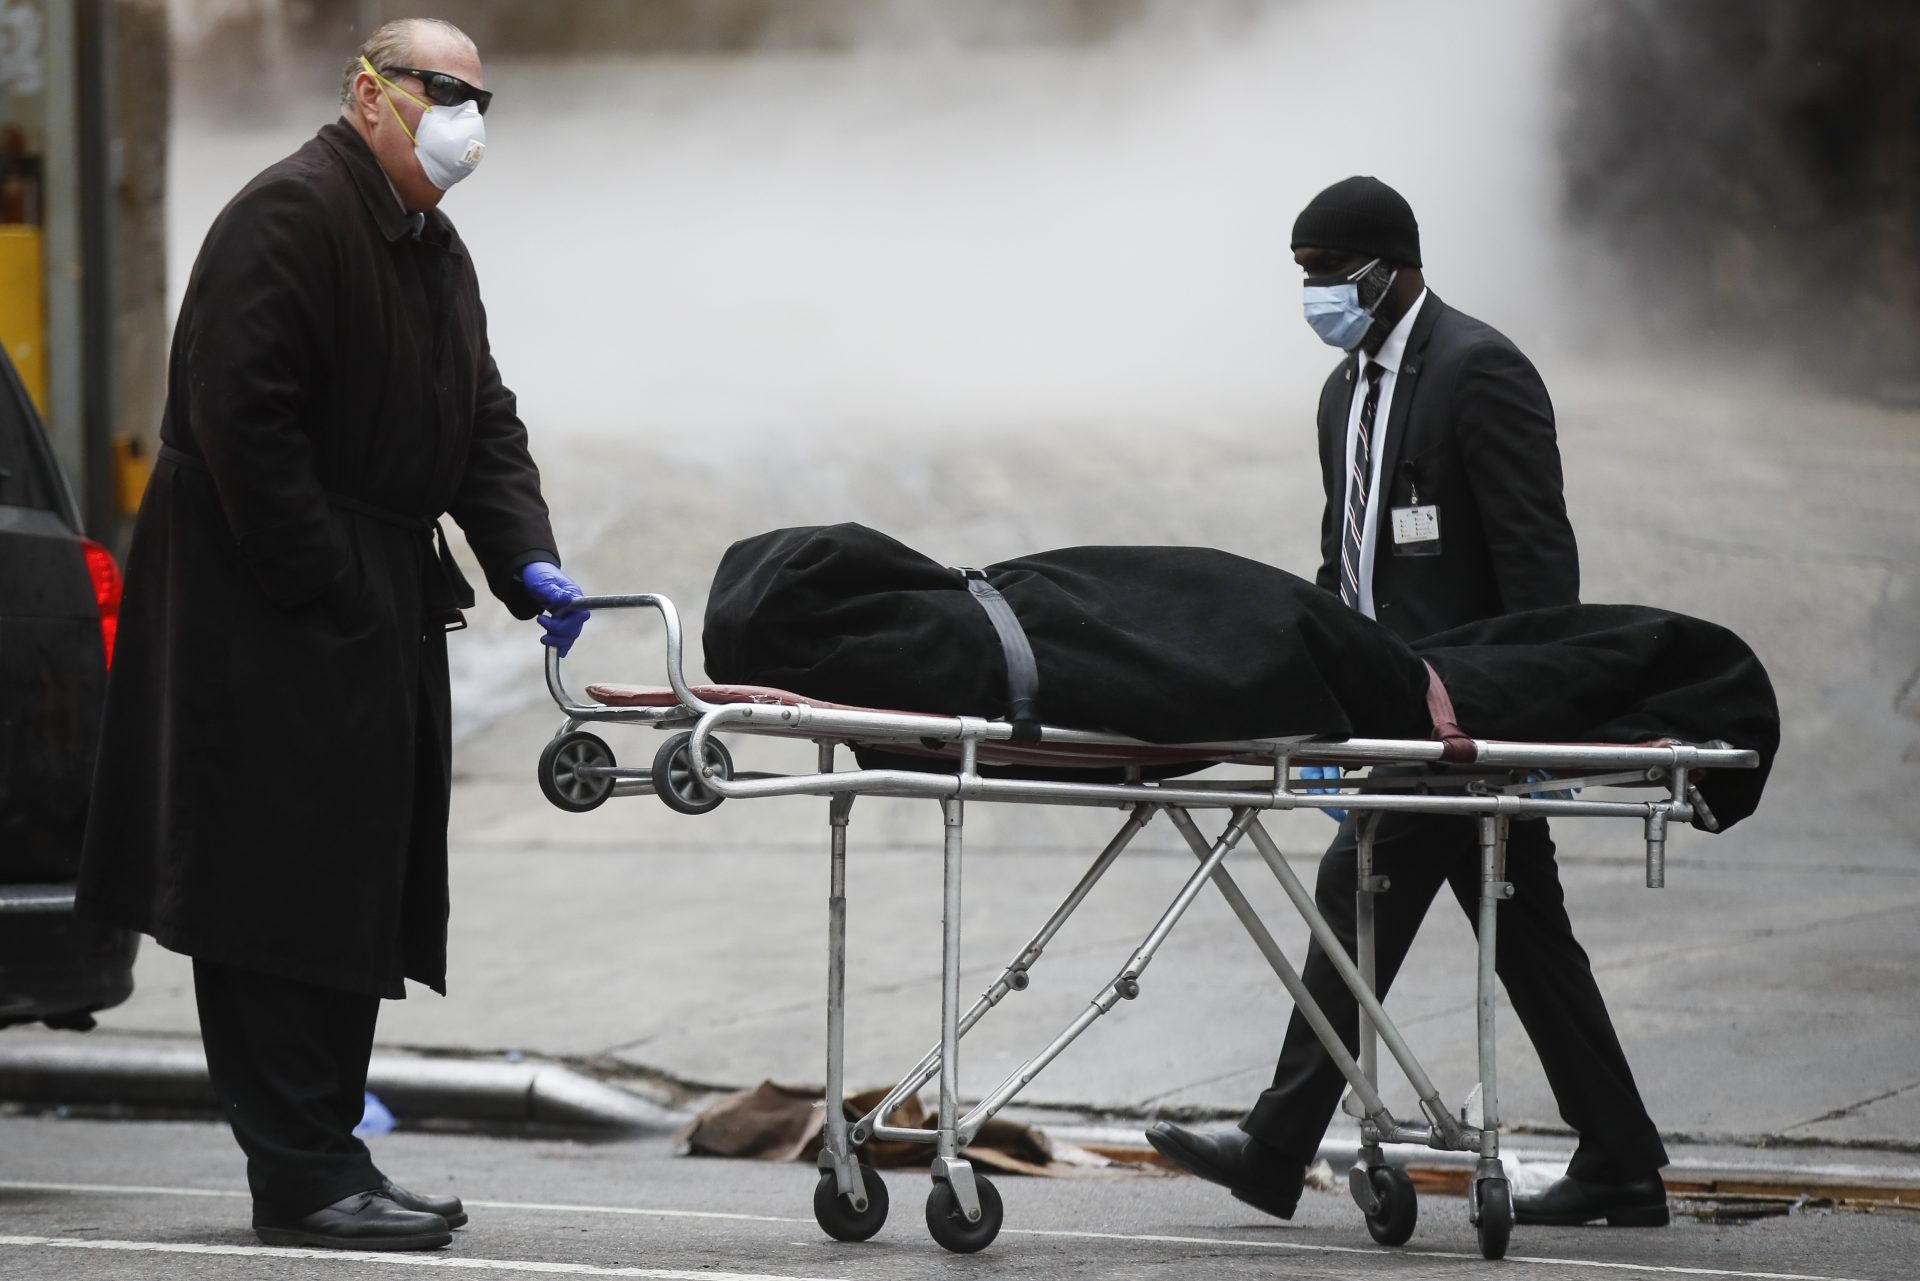 A funeral director wears personal protective equipment due to COVID-19 concerns while collecting a body at The Brooklyn Hospital Center, Thursday, April 9, 2020, in the Brooklyn borough of New York.